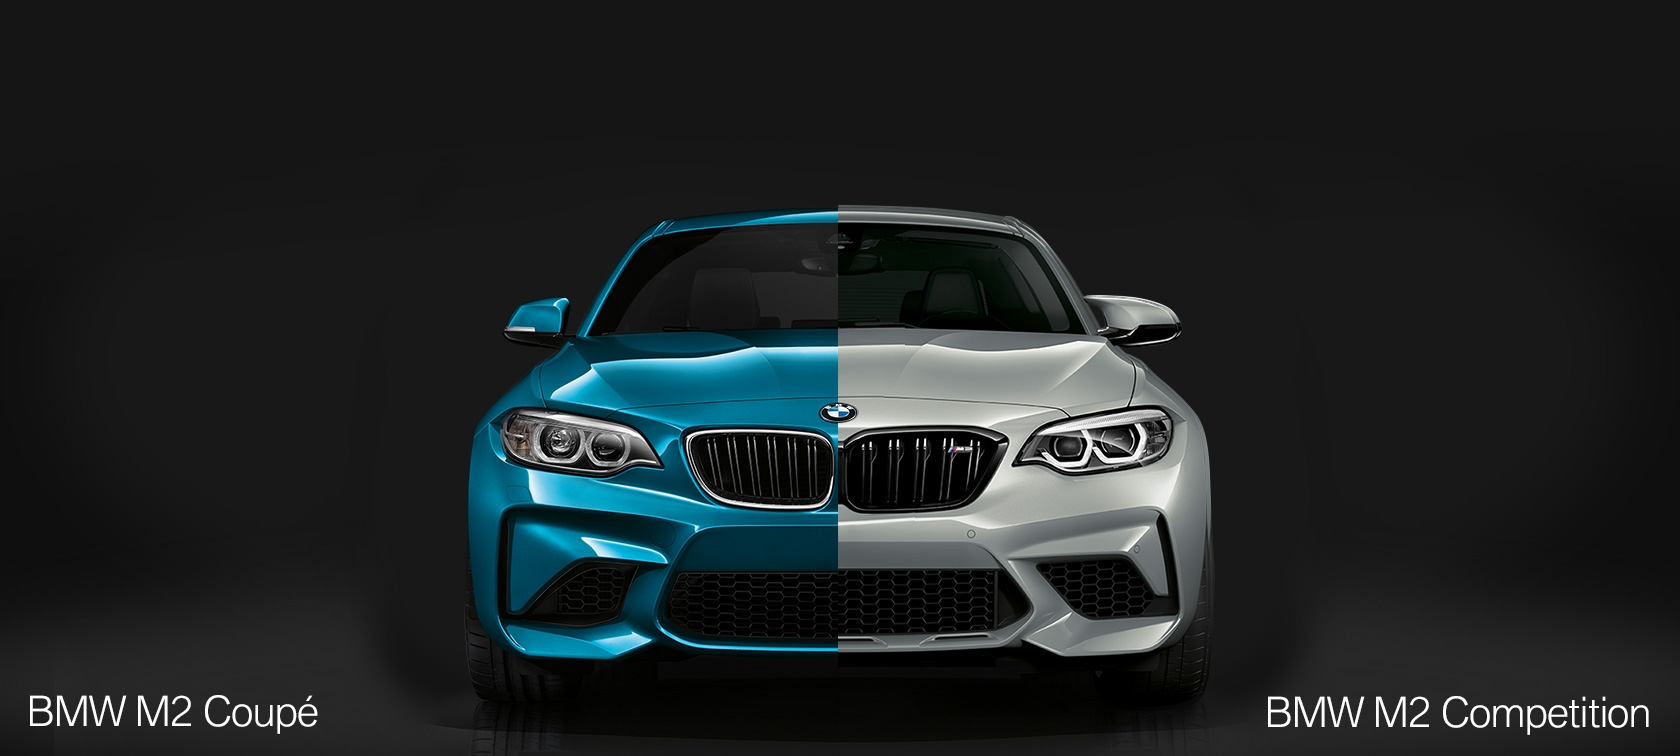 Bmw M2 Vs Bmw M2 Competition